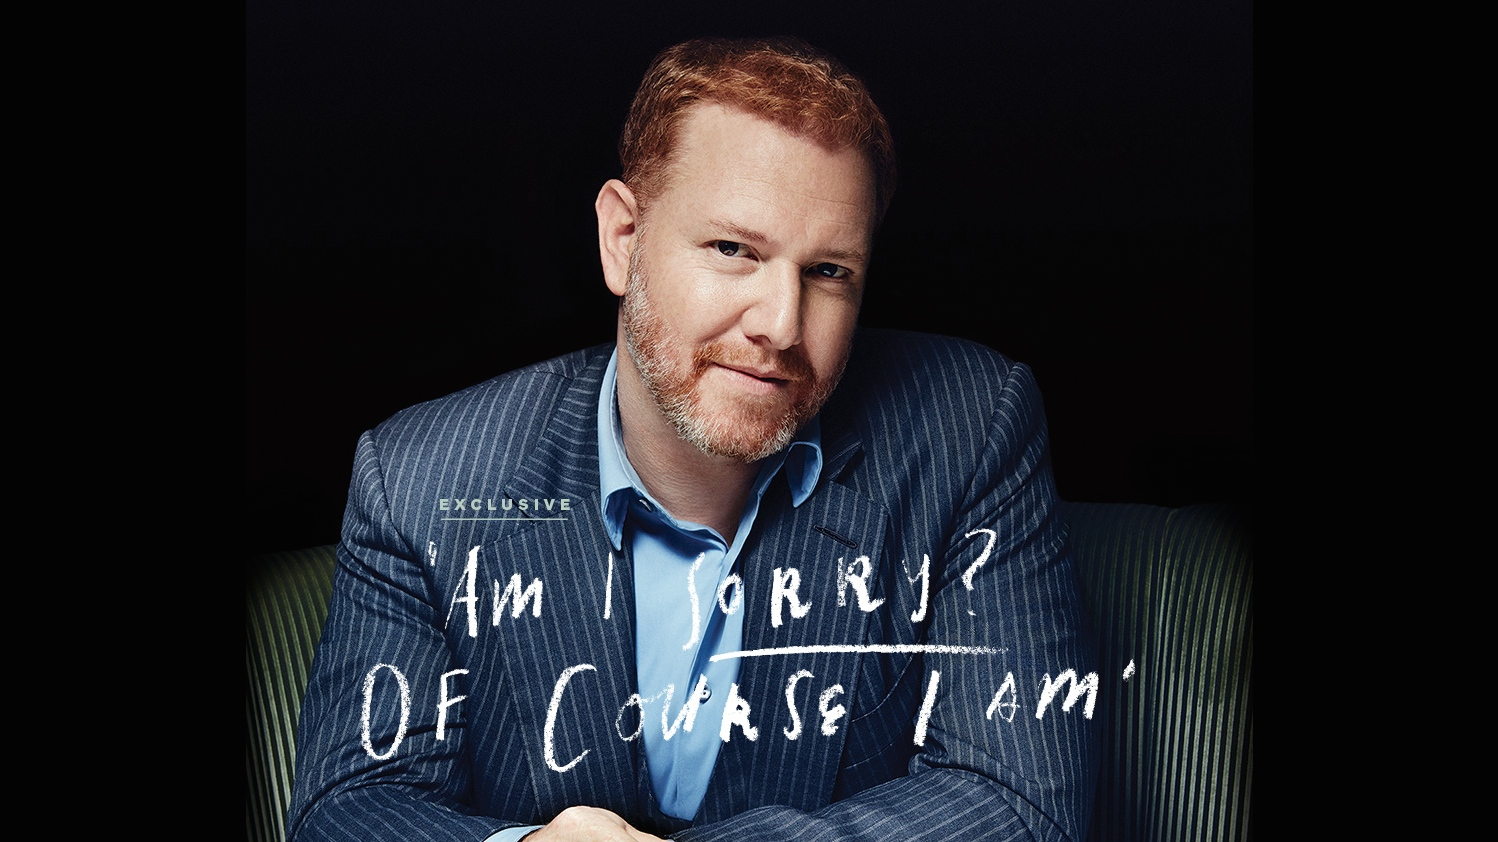 Relativity's Ryan Kavanaugh Breaks Silence, Points Fingers in Emotional Post-Bankruptcy Interview (Exclusive)